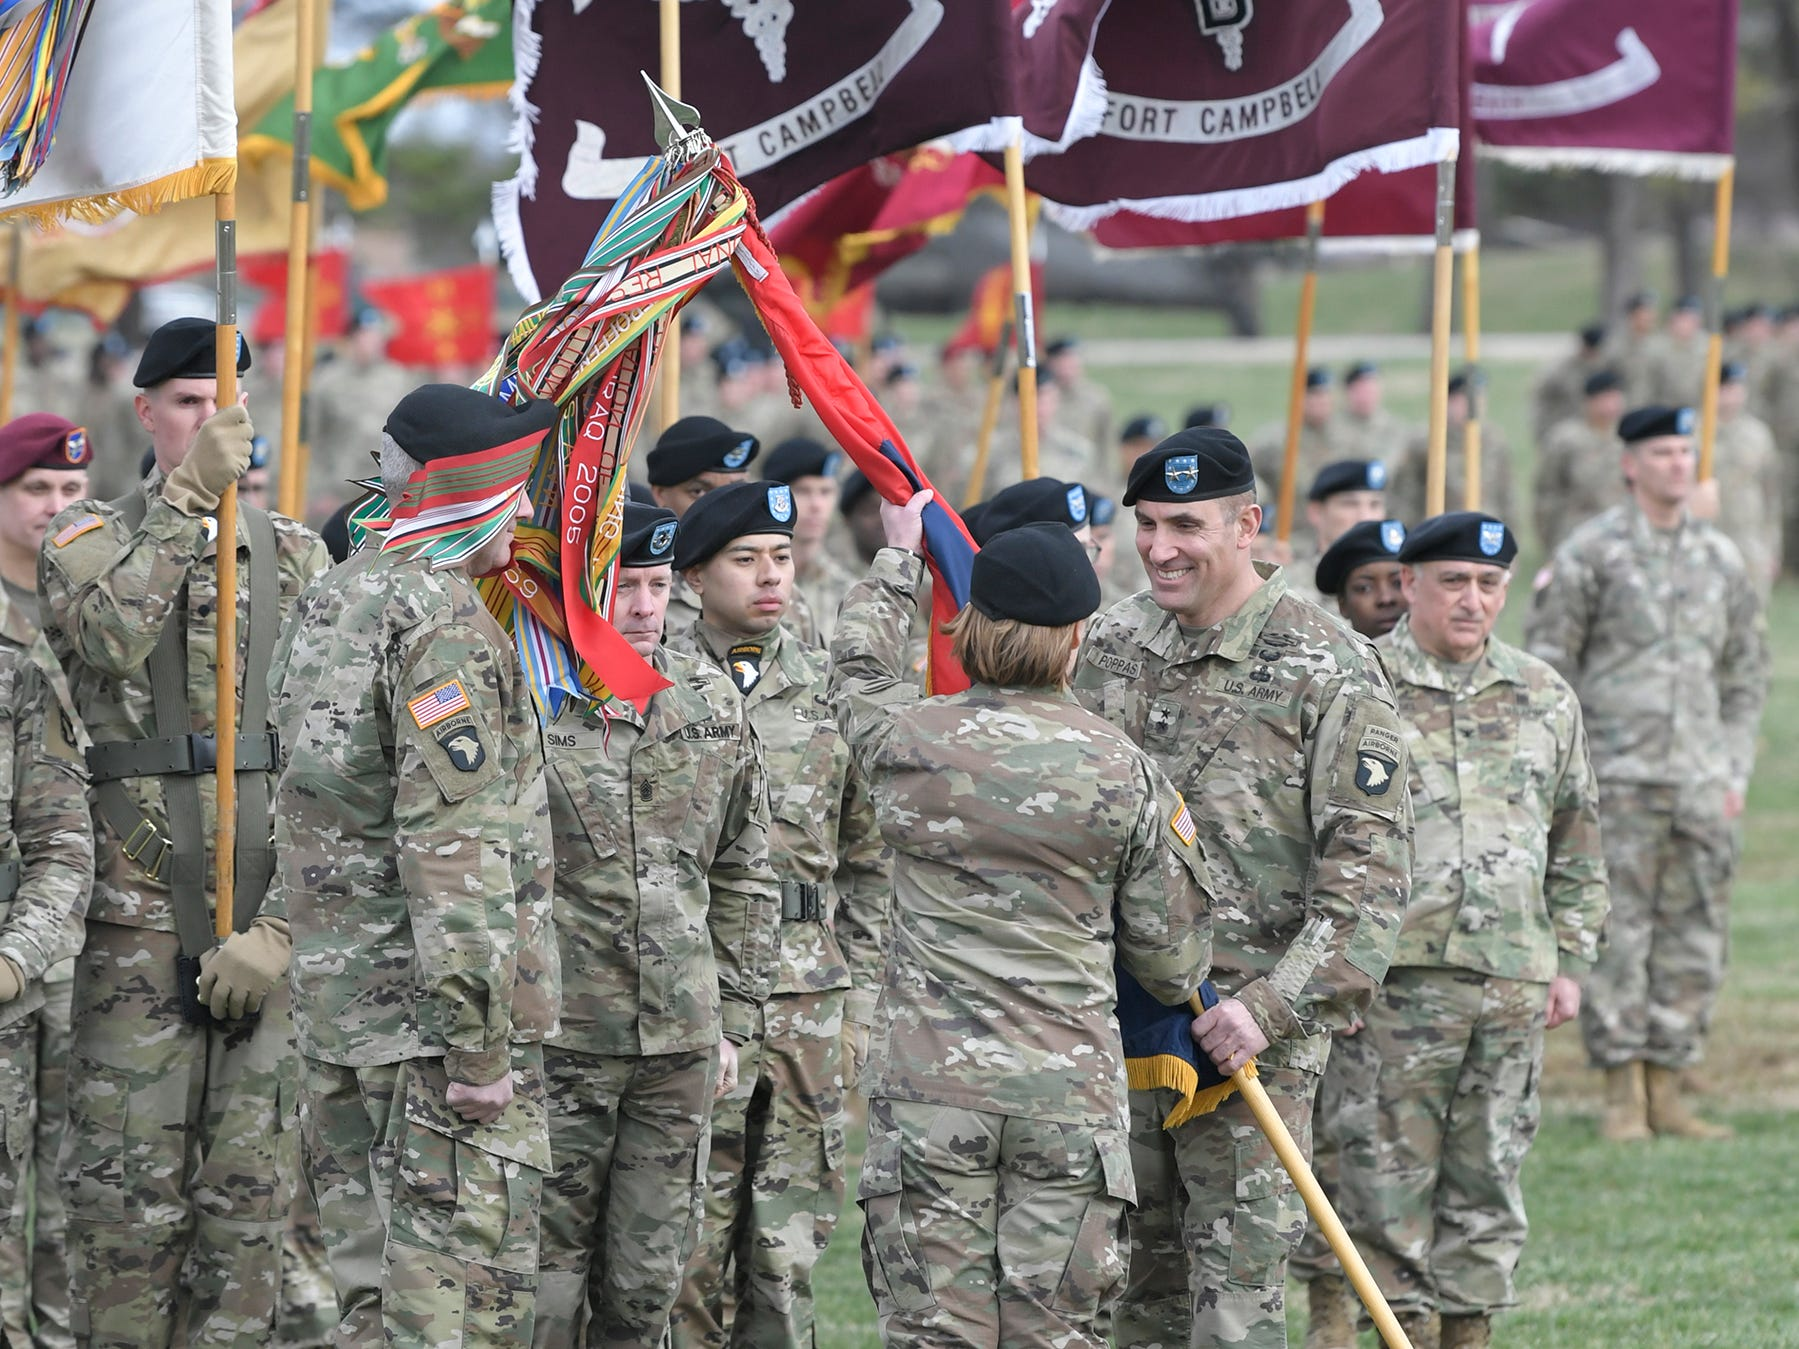 Maj. Gen. Andrew Poppas, right, relinquishes his command to Maj. Gen. Brian Winski, during a 101st Airborne Division (Air Assault) and Fort Campbell Division Change of Command ceremony in Fort Campbell, KY on Thursday, Feb. 14, 2019.